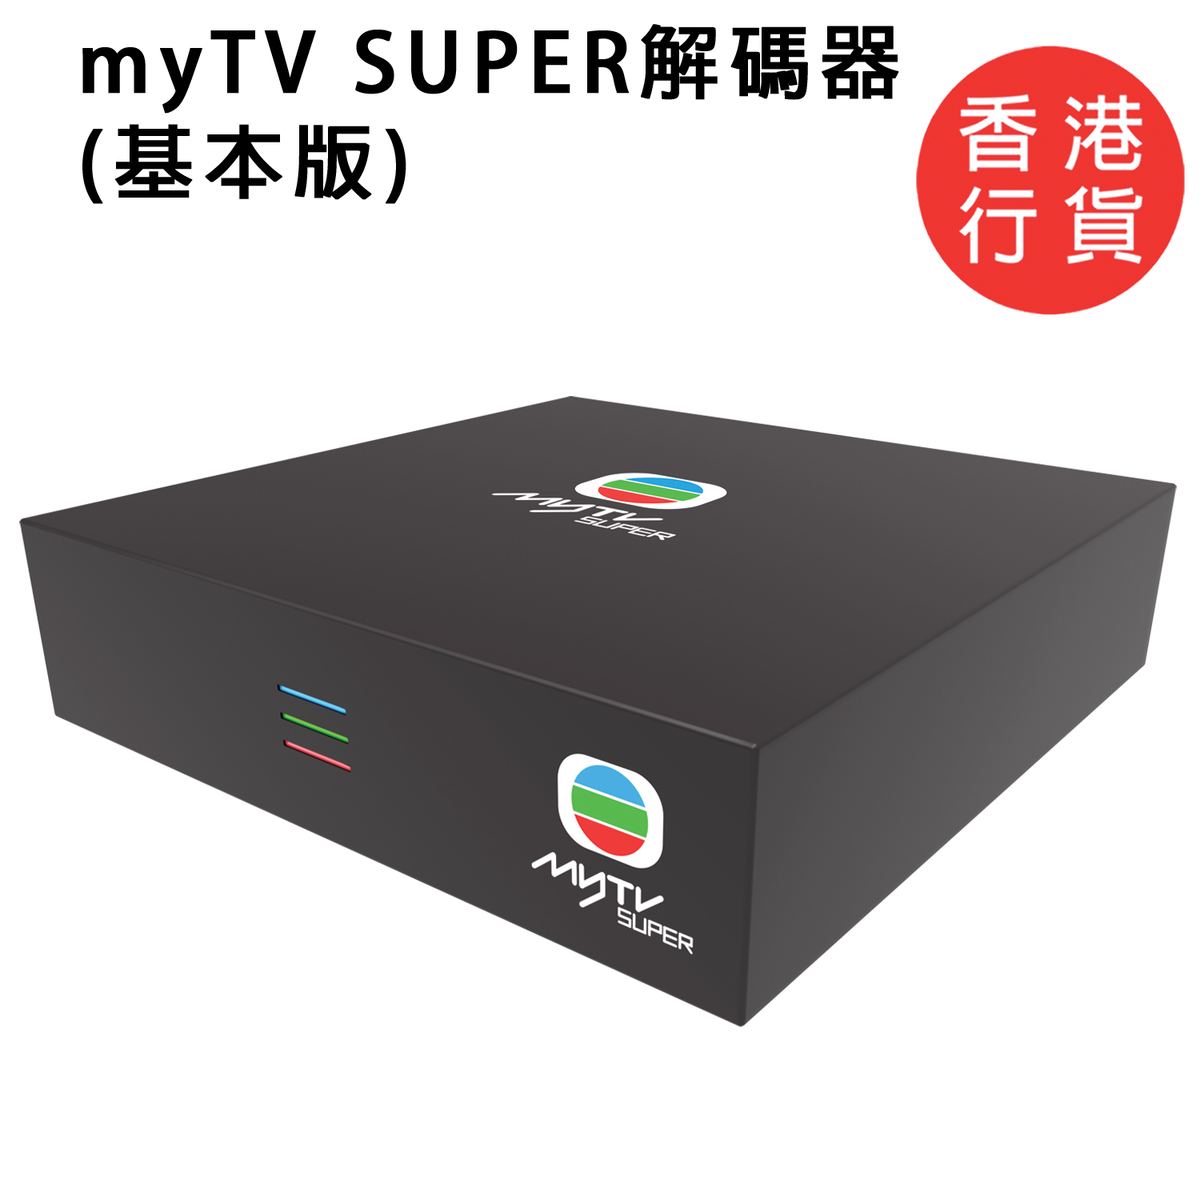 TVB | myTV SUPER Box (Alpha Pack) | HKTVmall Online Shopping